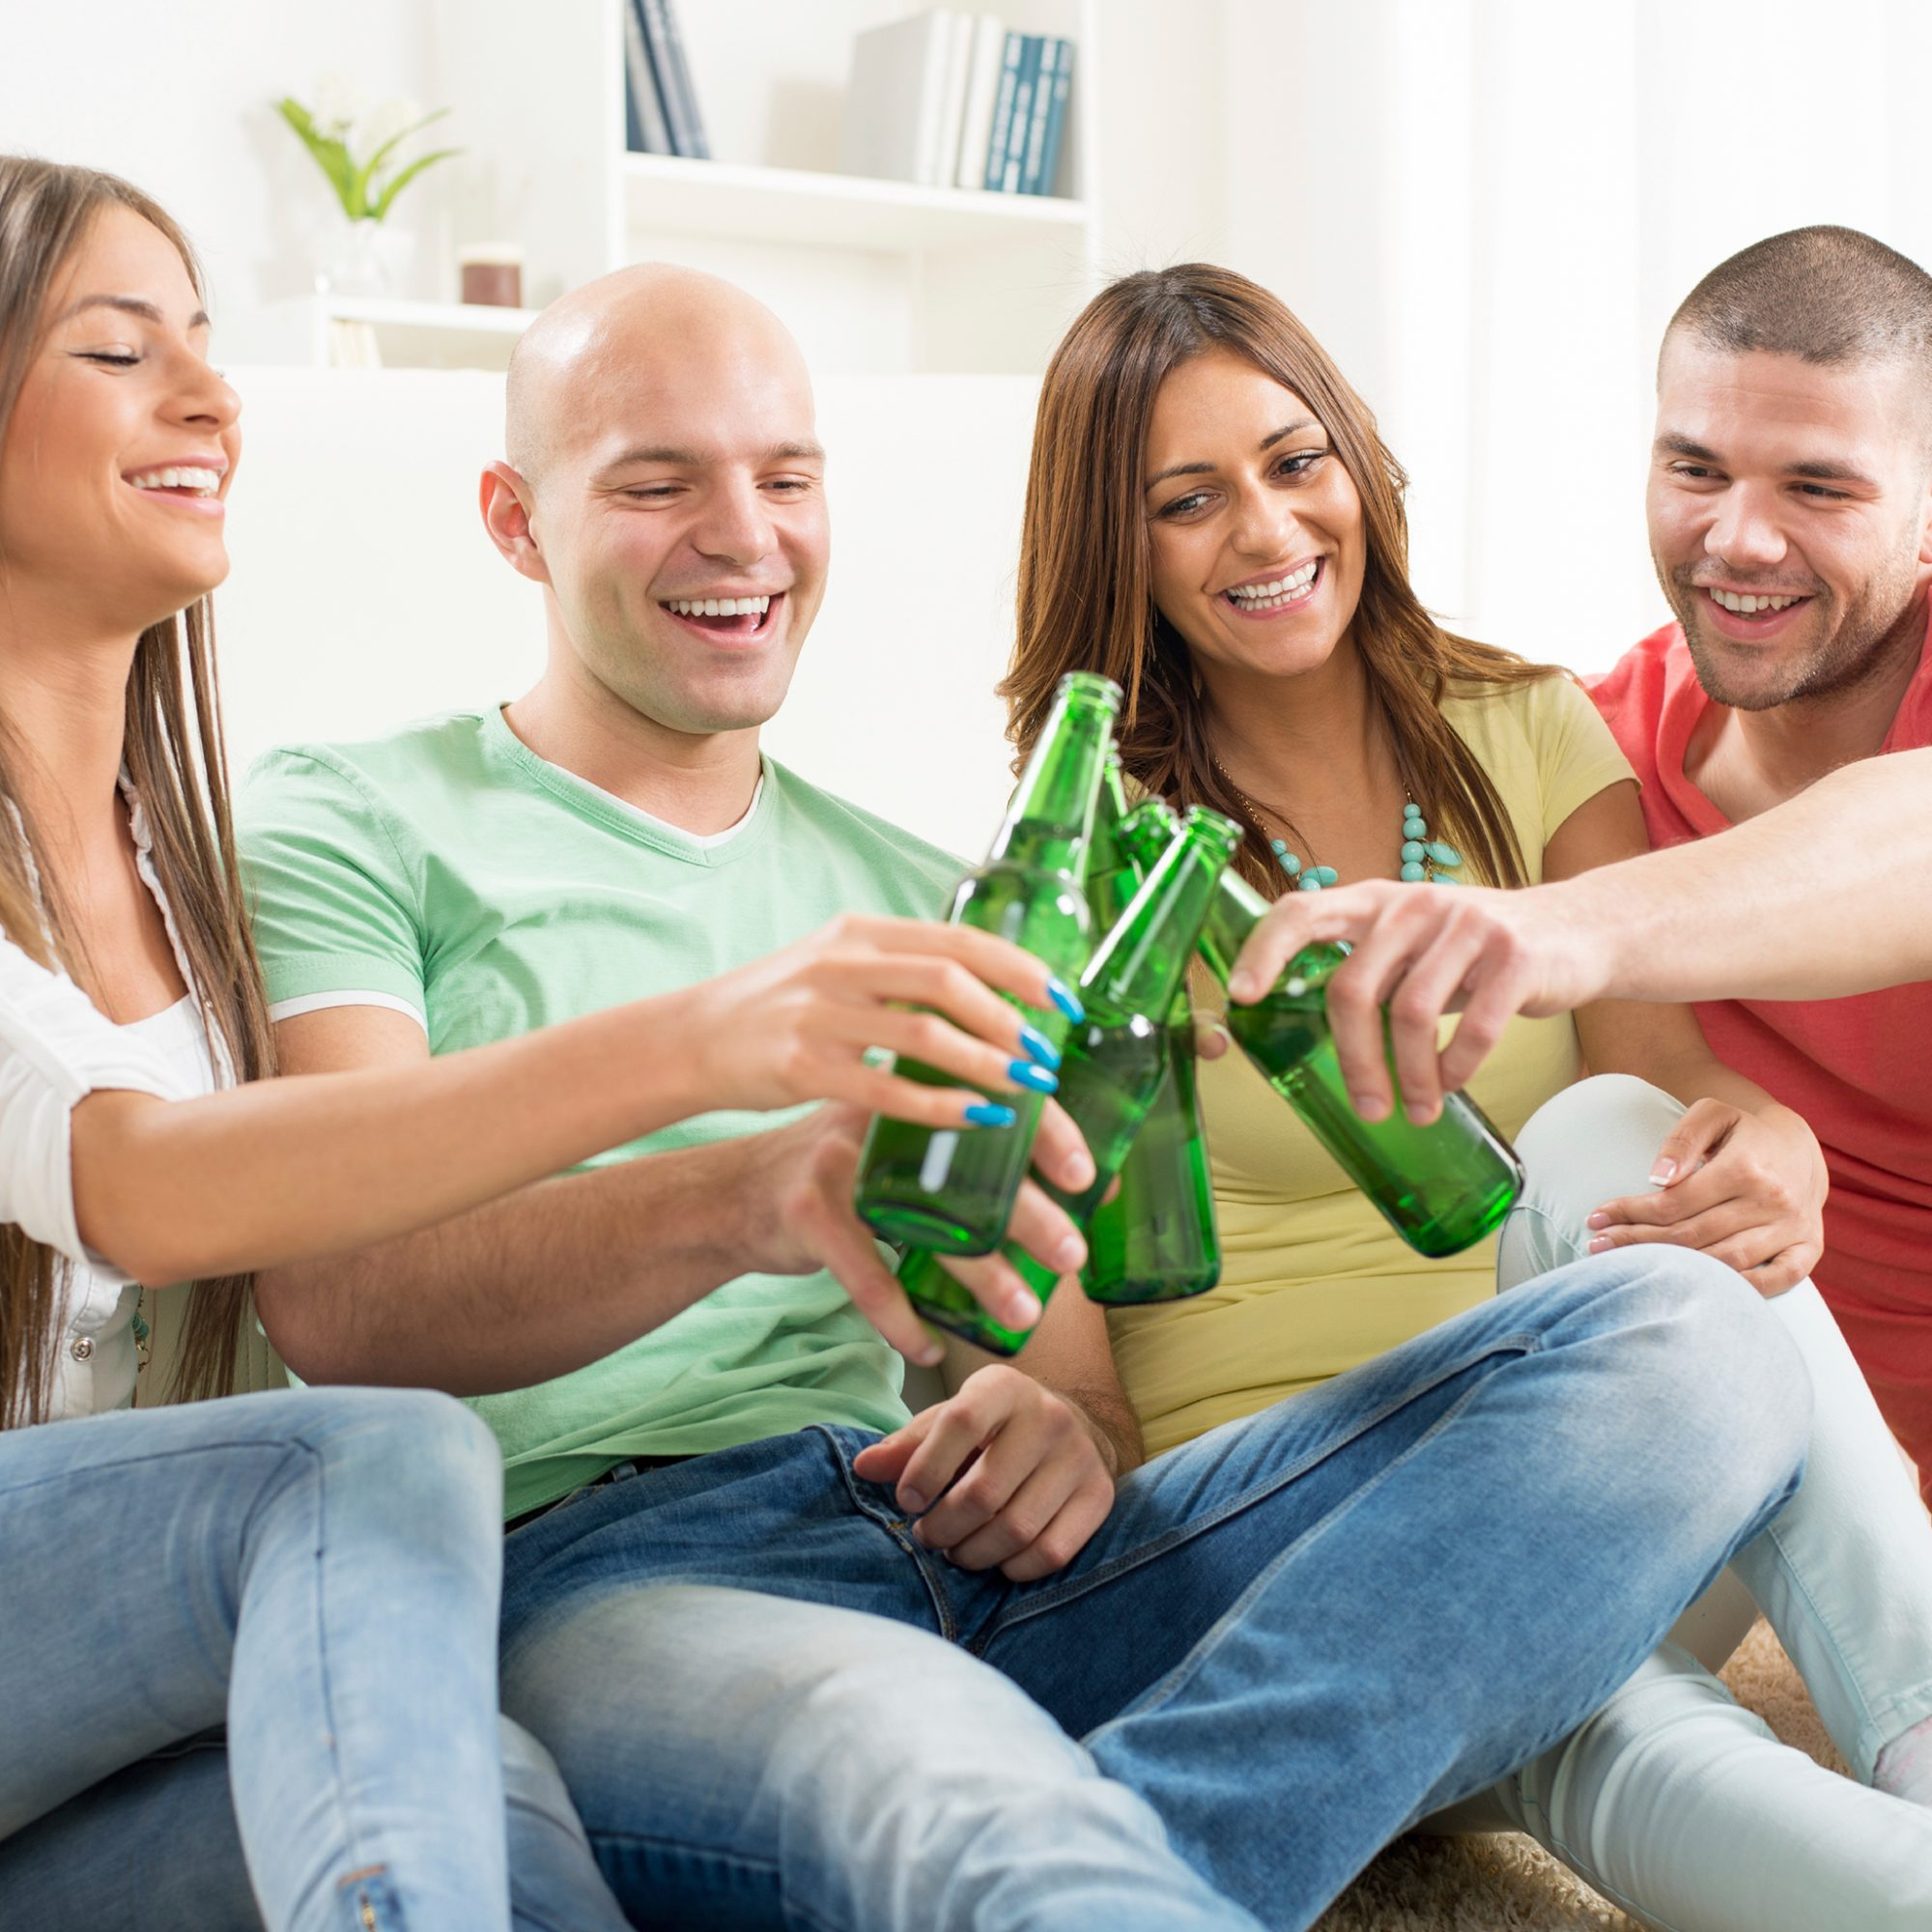 What Your Pregaming Choice Says About You